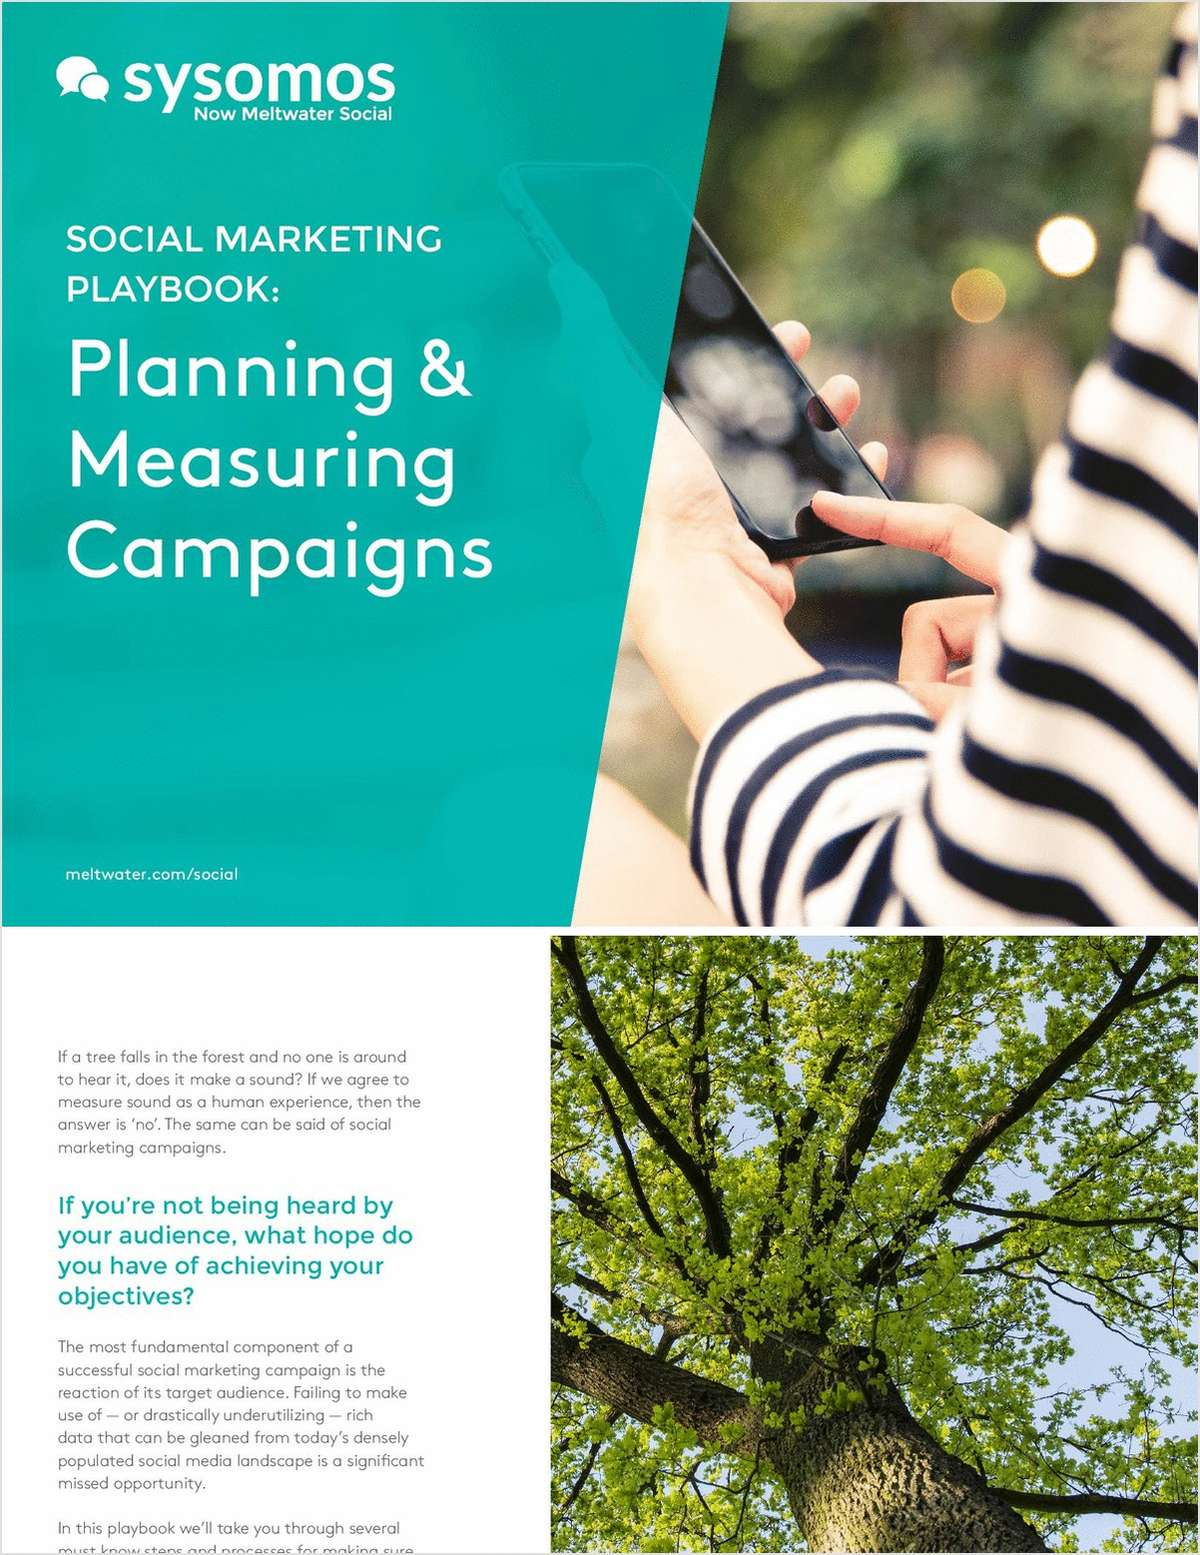 Best Practices for Utilizing Social Insights to Plan and Measure Campaigns